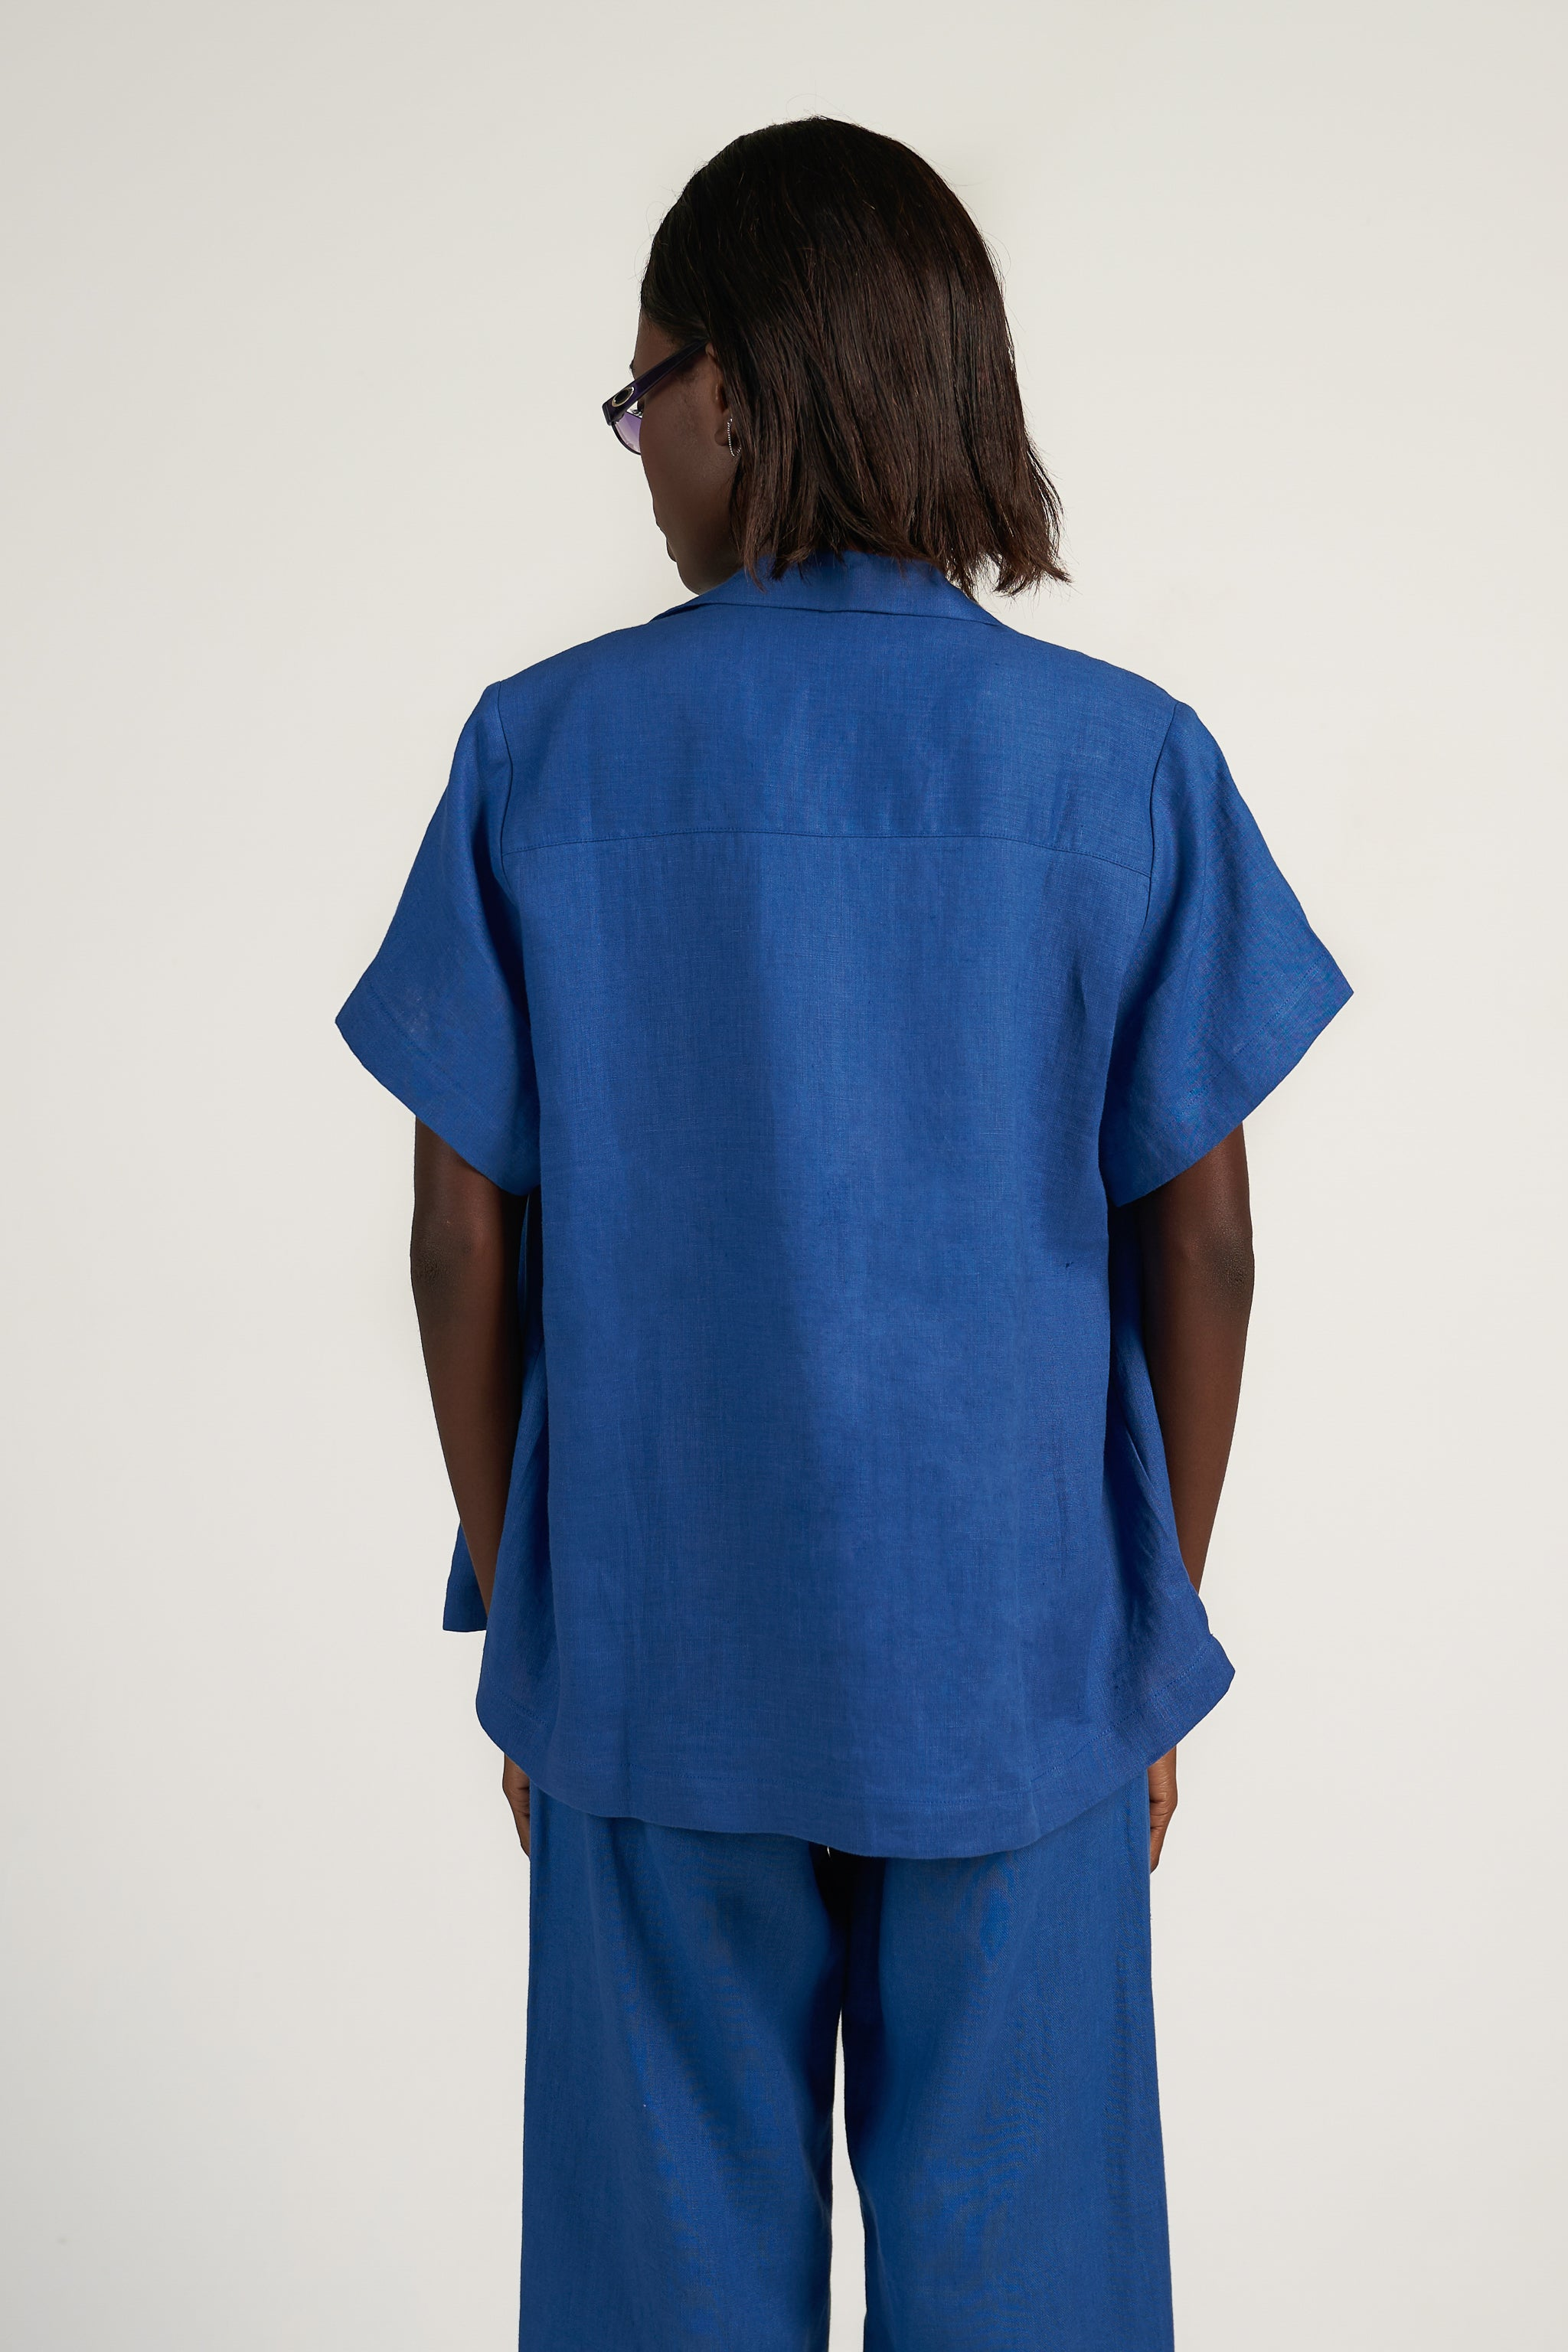 BOX SHIRT in Cobalt